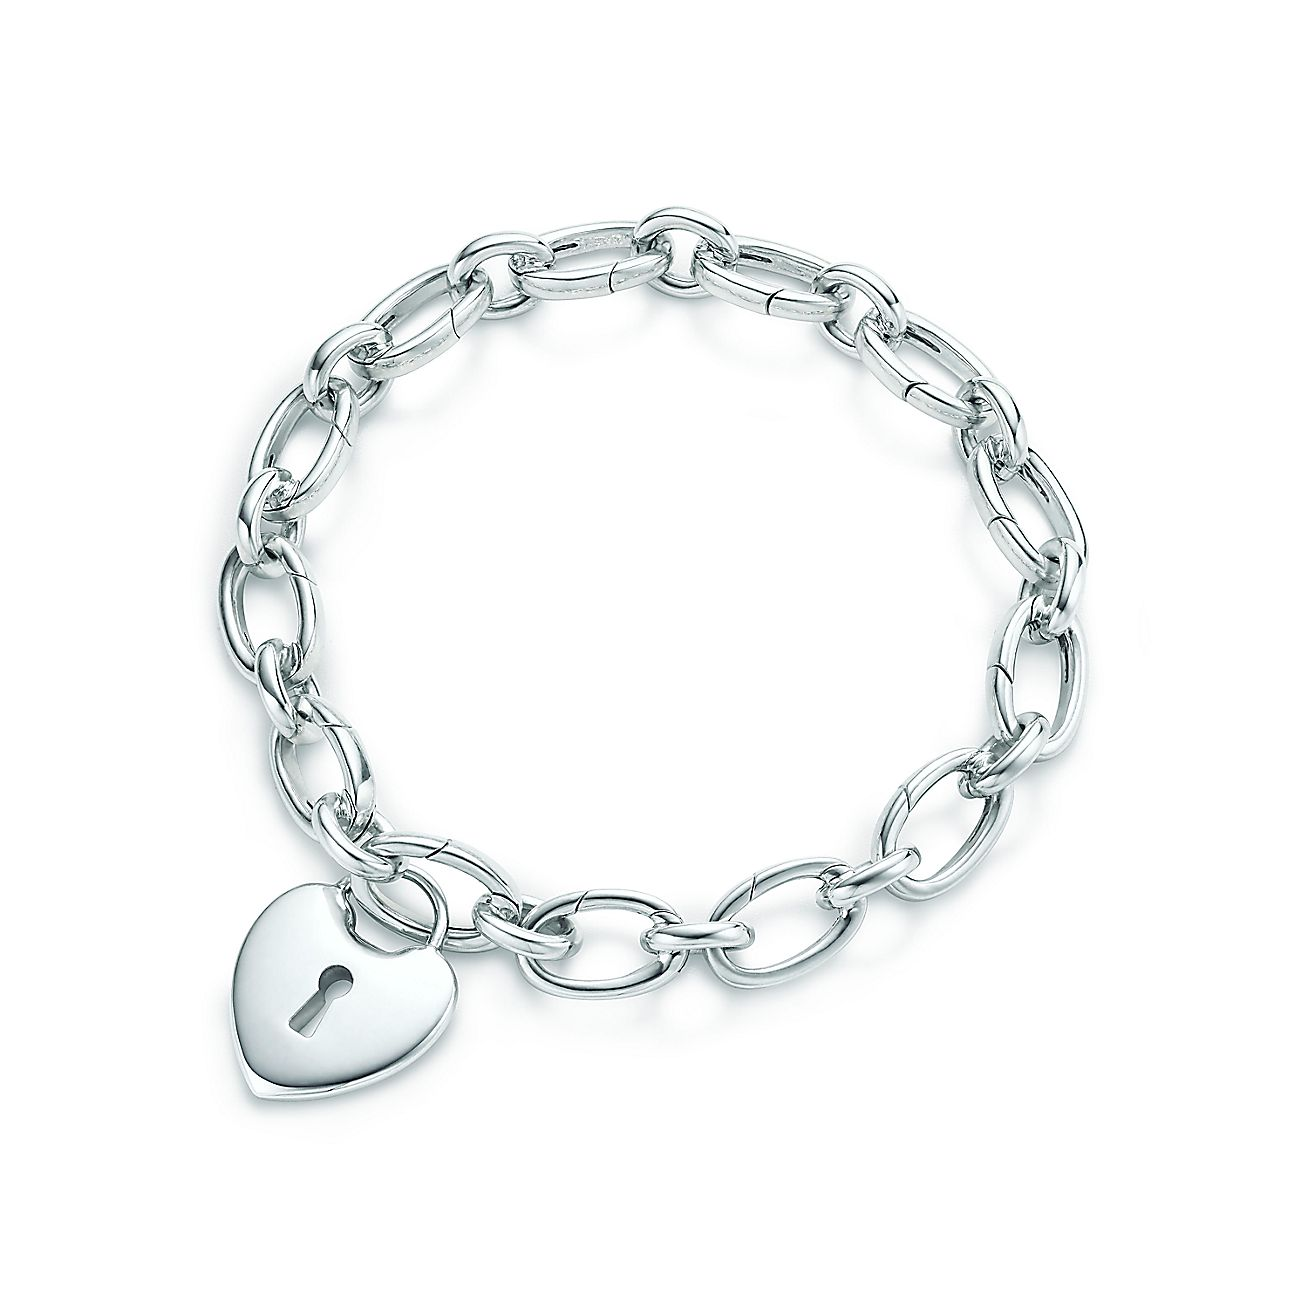 Tiffany Locks:heart lock and bracelet